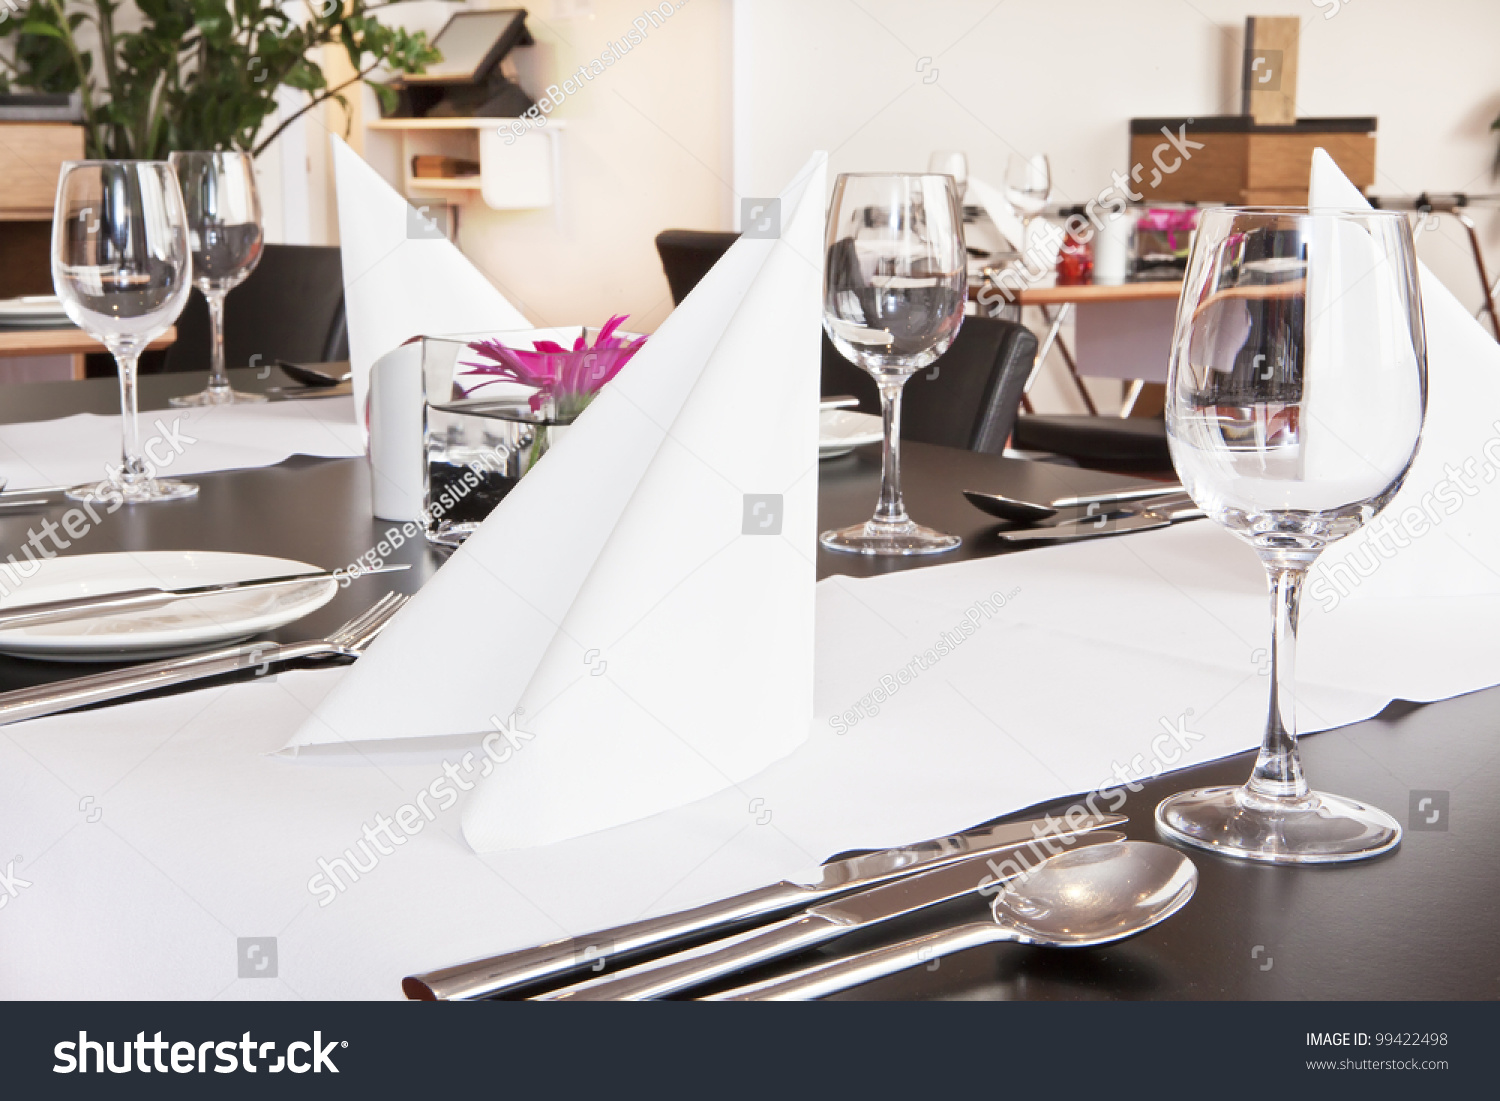 Restaurant table setup - Formal Dining Table Set Up With Flower In Luxury Restaurant